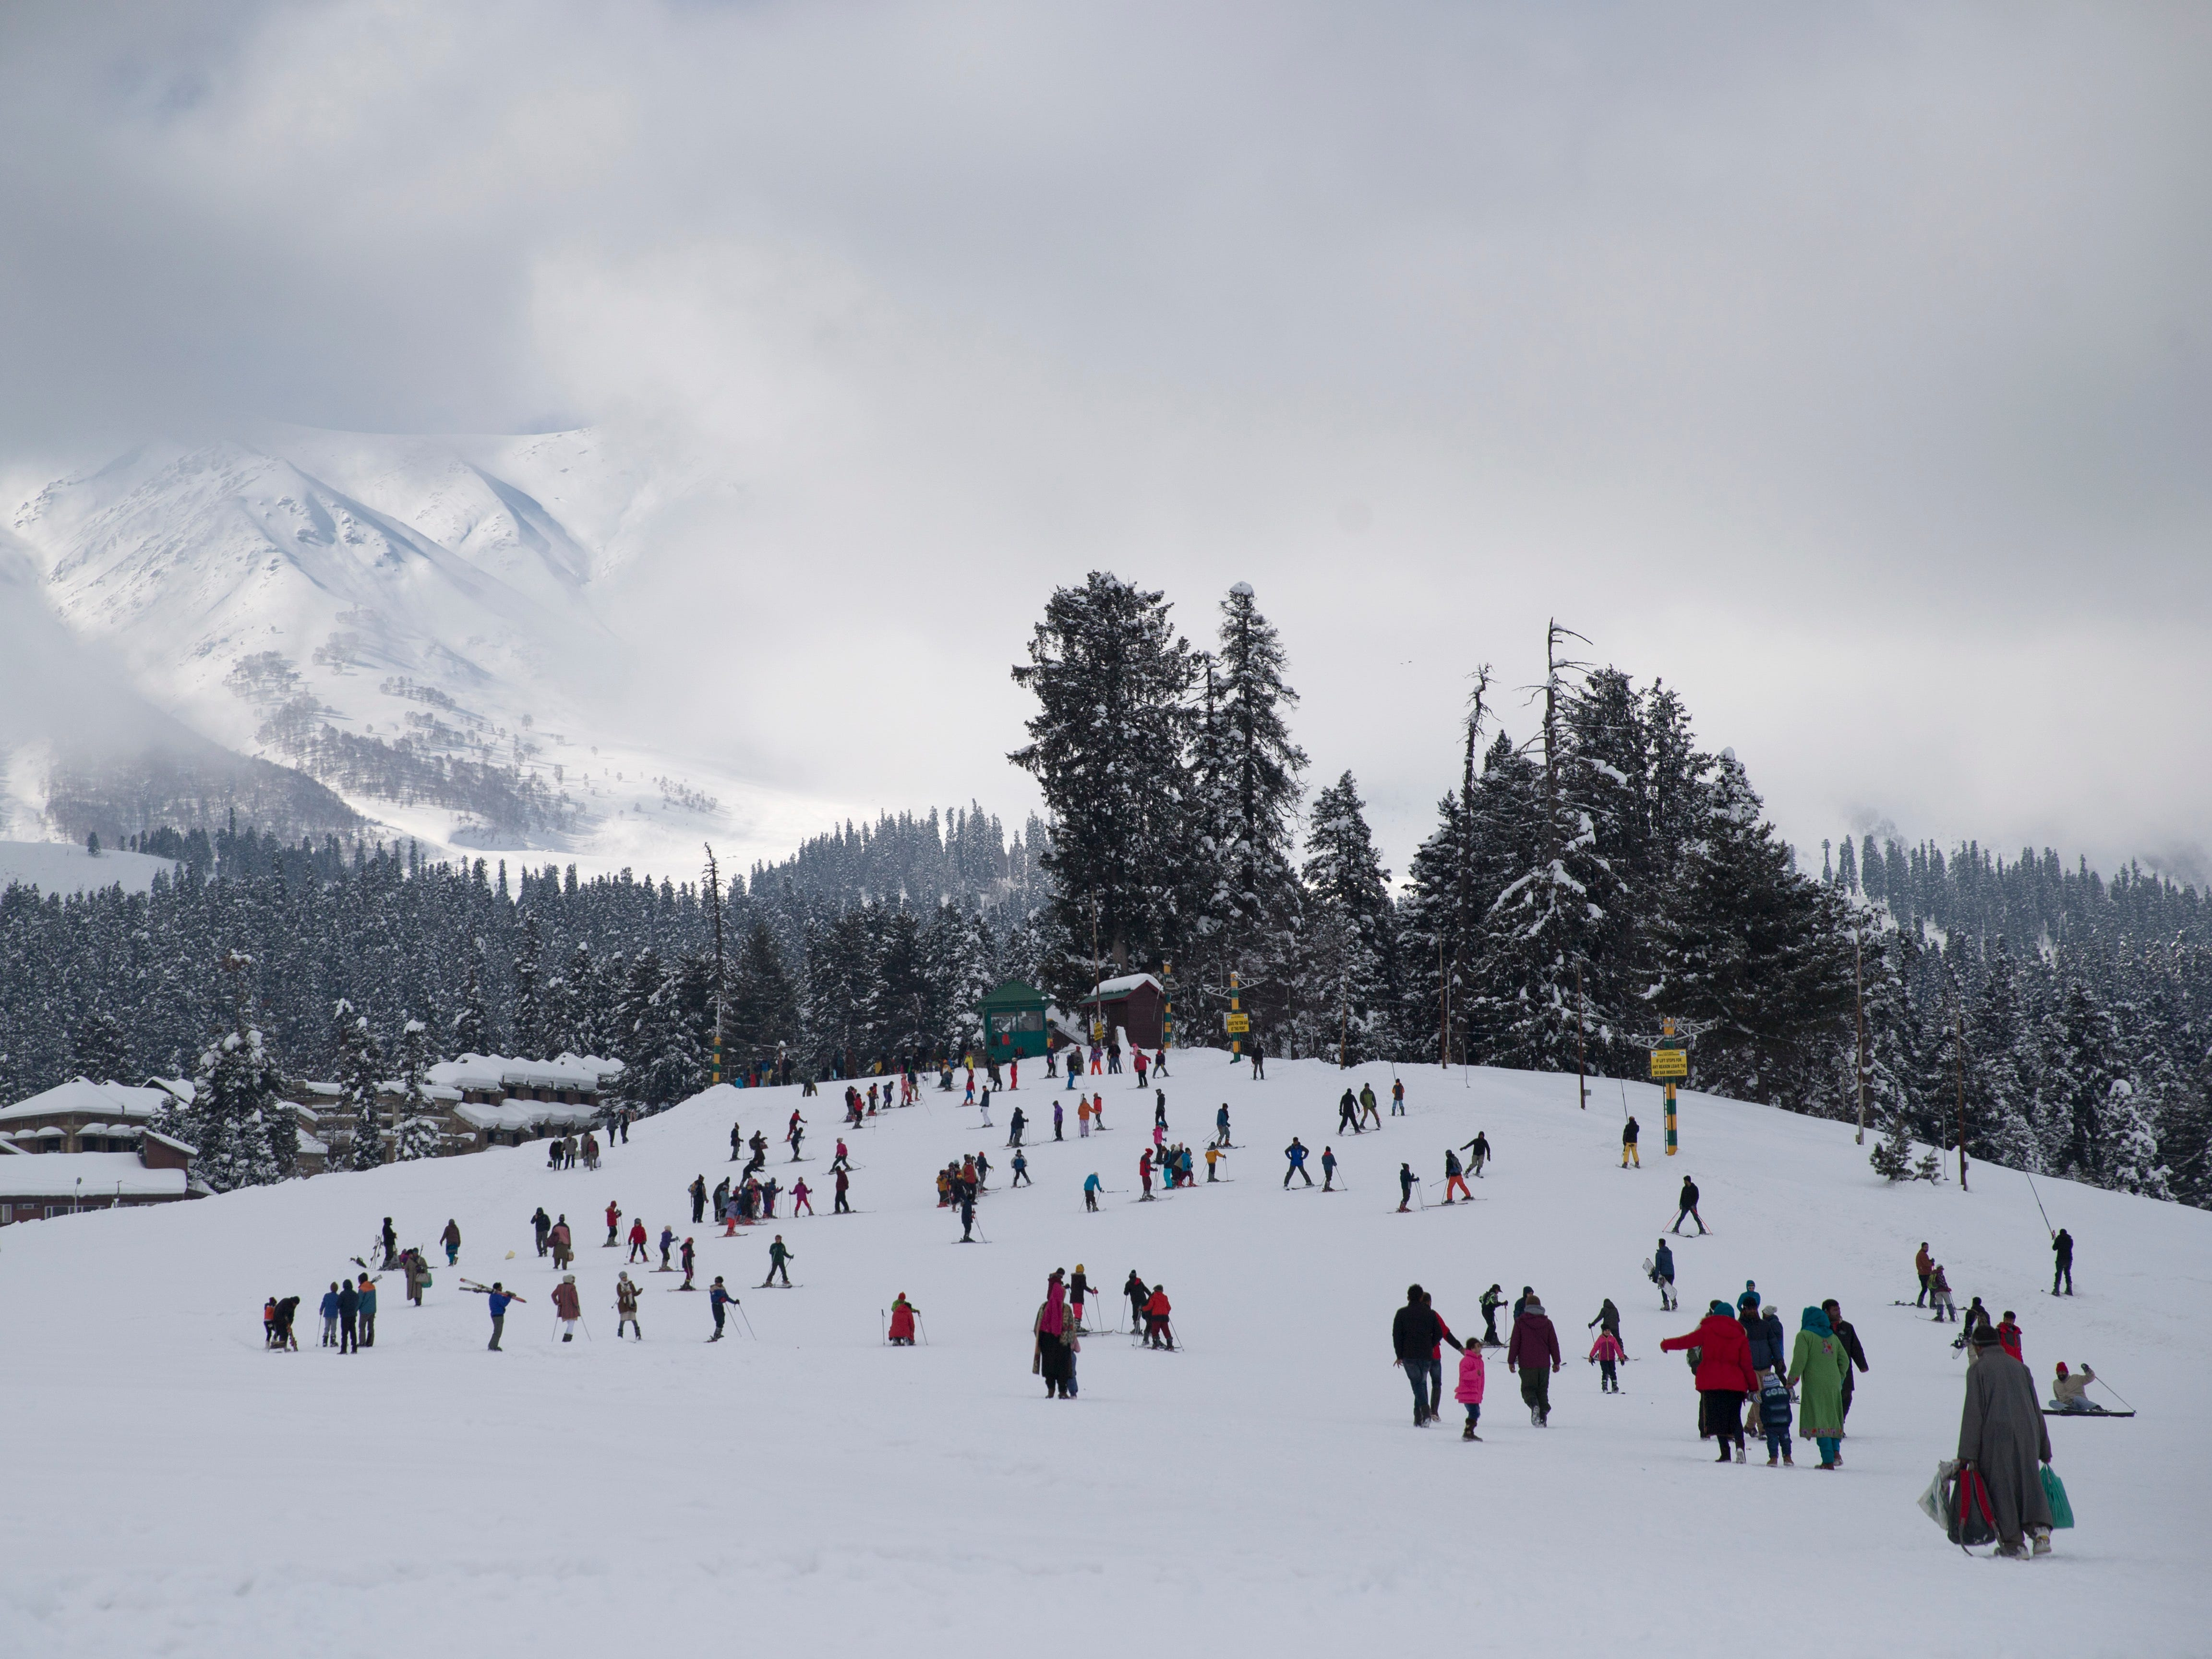 People ski on a slop in Gulmarg, north of Srinagar, Indian controlled Kashmir,  Jan 9. 2019.  Gulmarg which means meadow of flowers, was transformed into a resort by the British nearly a century ago. Located at 9,000 feet above sea level, it gets one to one-and-a-half meters of snow in the winter.